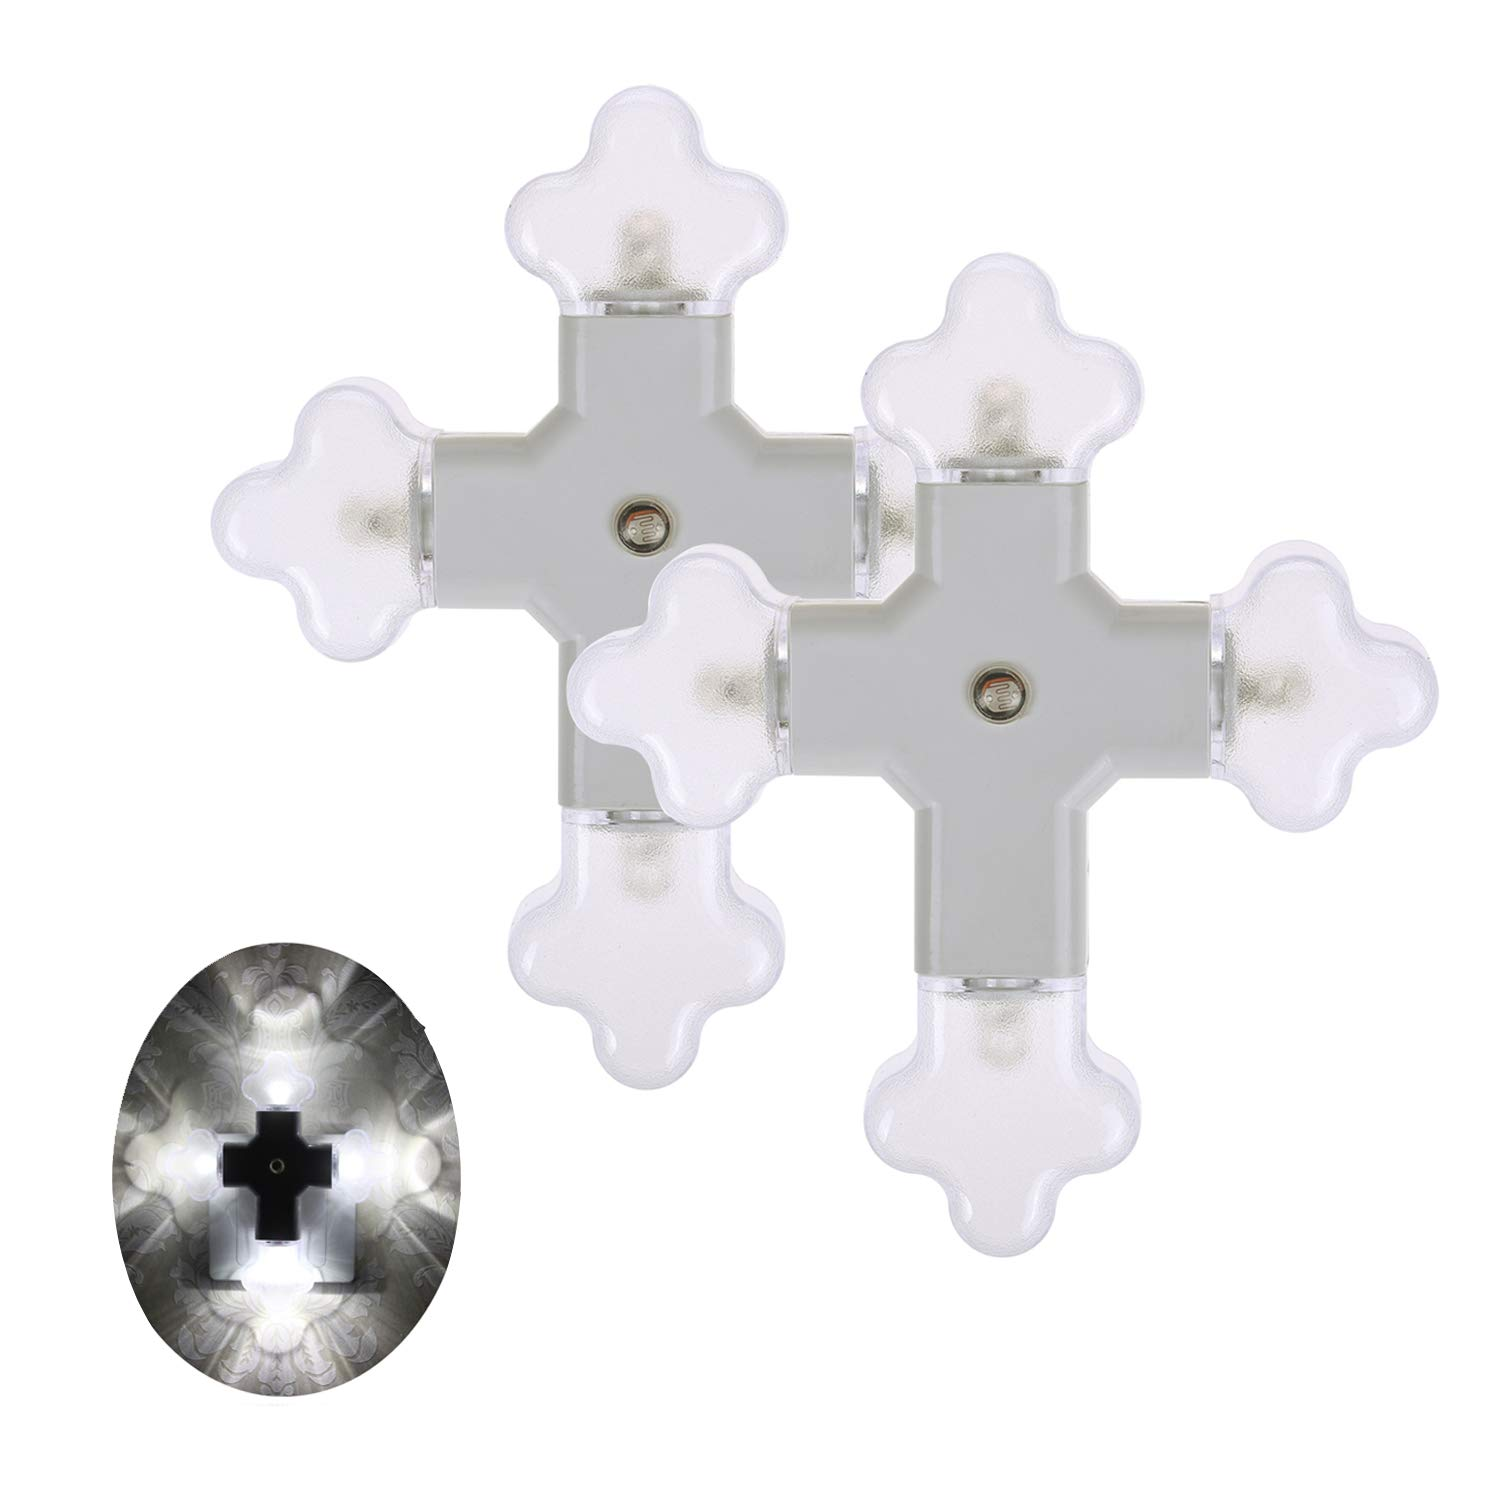 Cross-in LED Night Light Four Flower Lamp with Dusk to Dawn Sensor for Hallway, Kitchen, Bathroom, Bedroom, Stairs or Any Dark Room, White Light,0.3W/pc,2-Pack